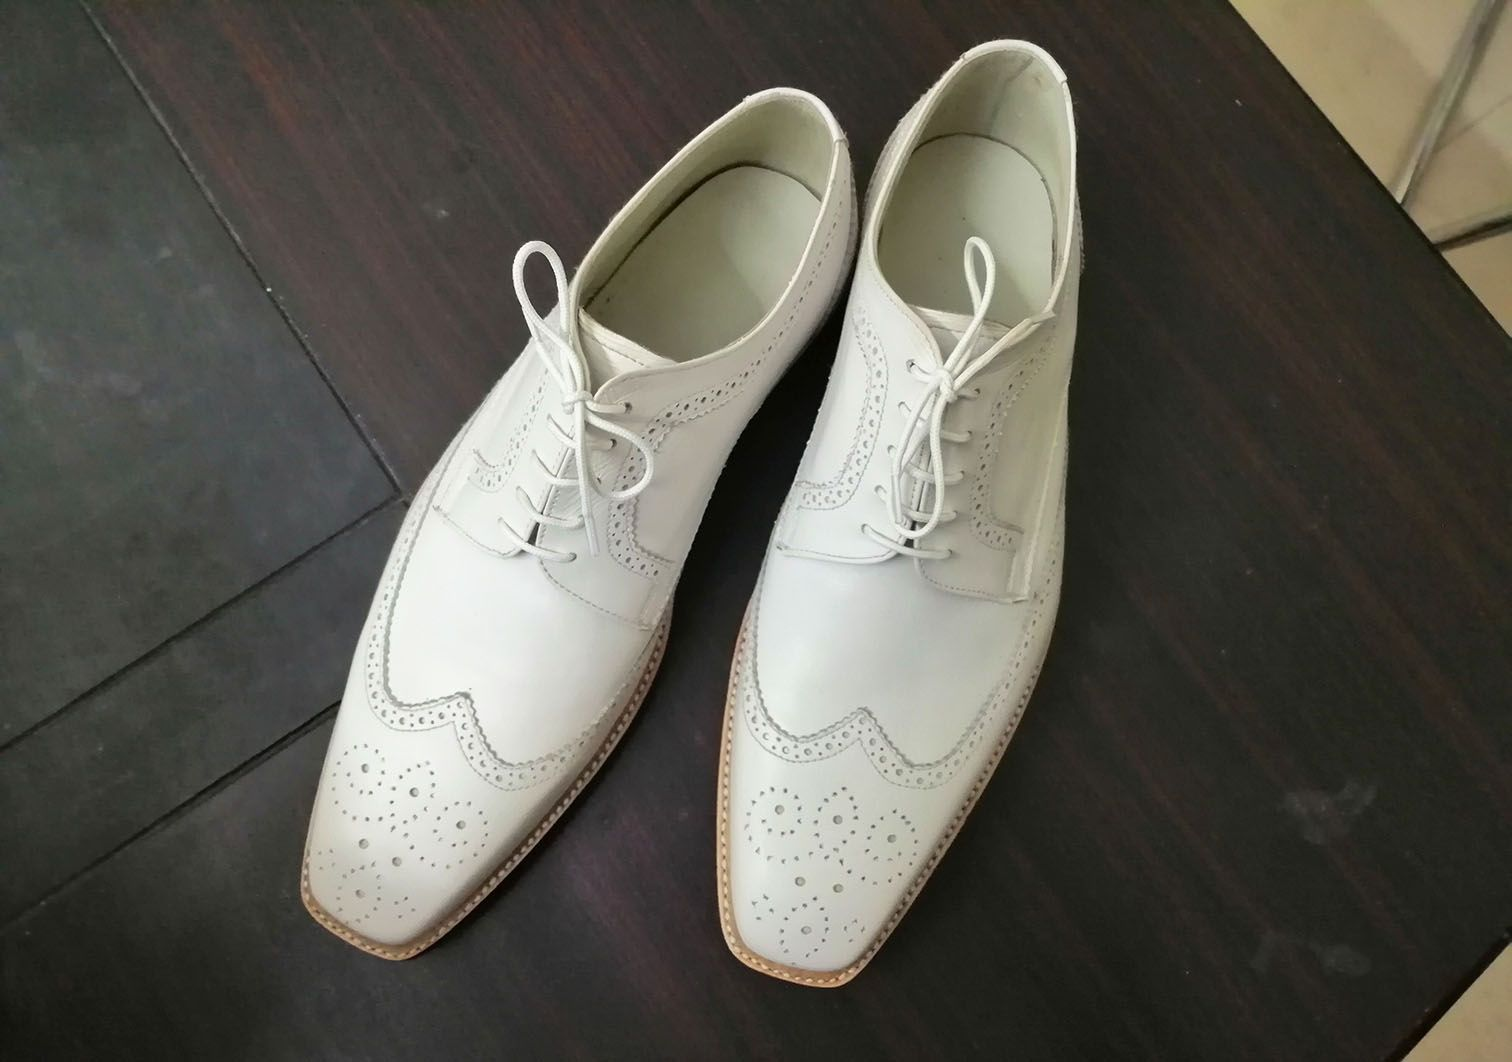 Handmade Men S Wing Tip Lace Up Shoes Men S White Brogue Leather Shoes From Leatherworld2014 Leather Shoes Men Dress Shoes Men Handmade Dress Shoes [ 1062 x 1512 Pixel ]